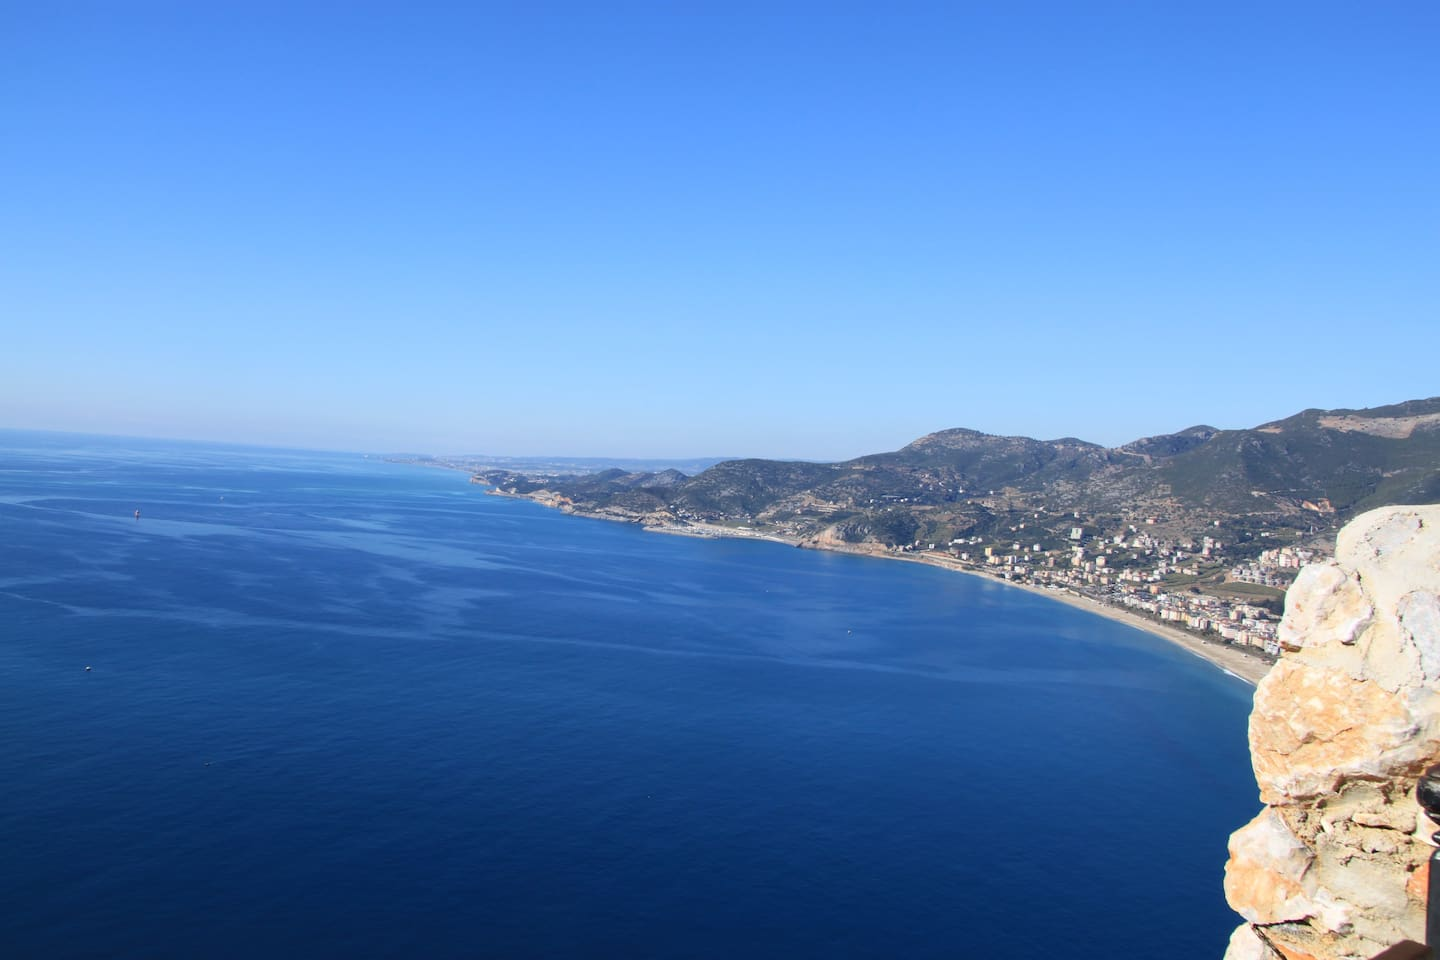 View from Cleopatra Cliff over Cleopatra beach in Alanya